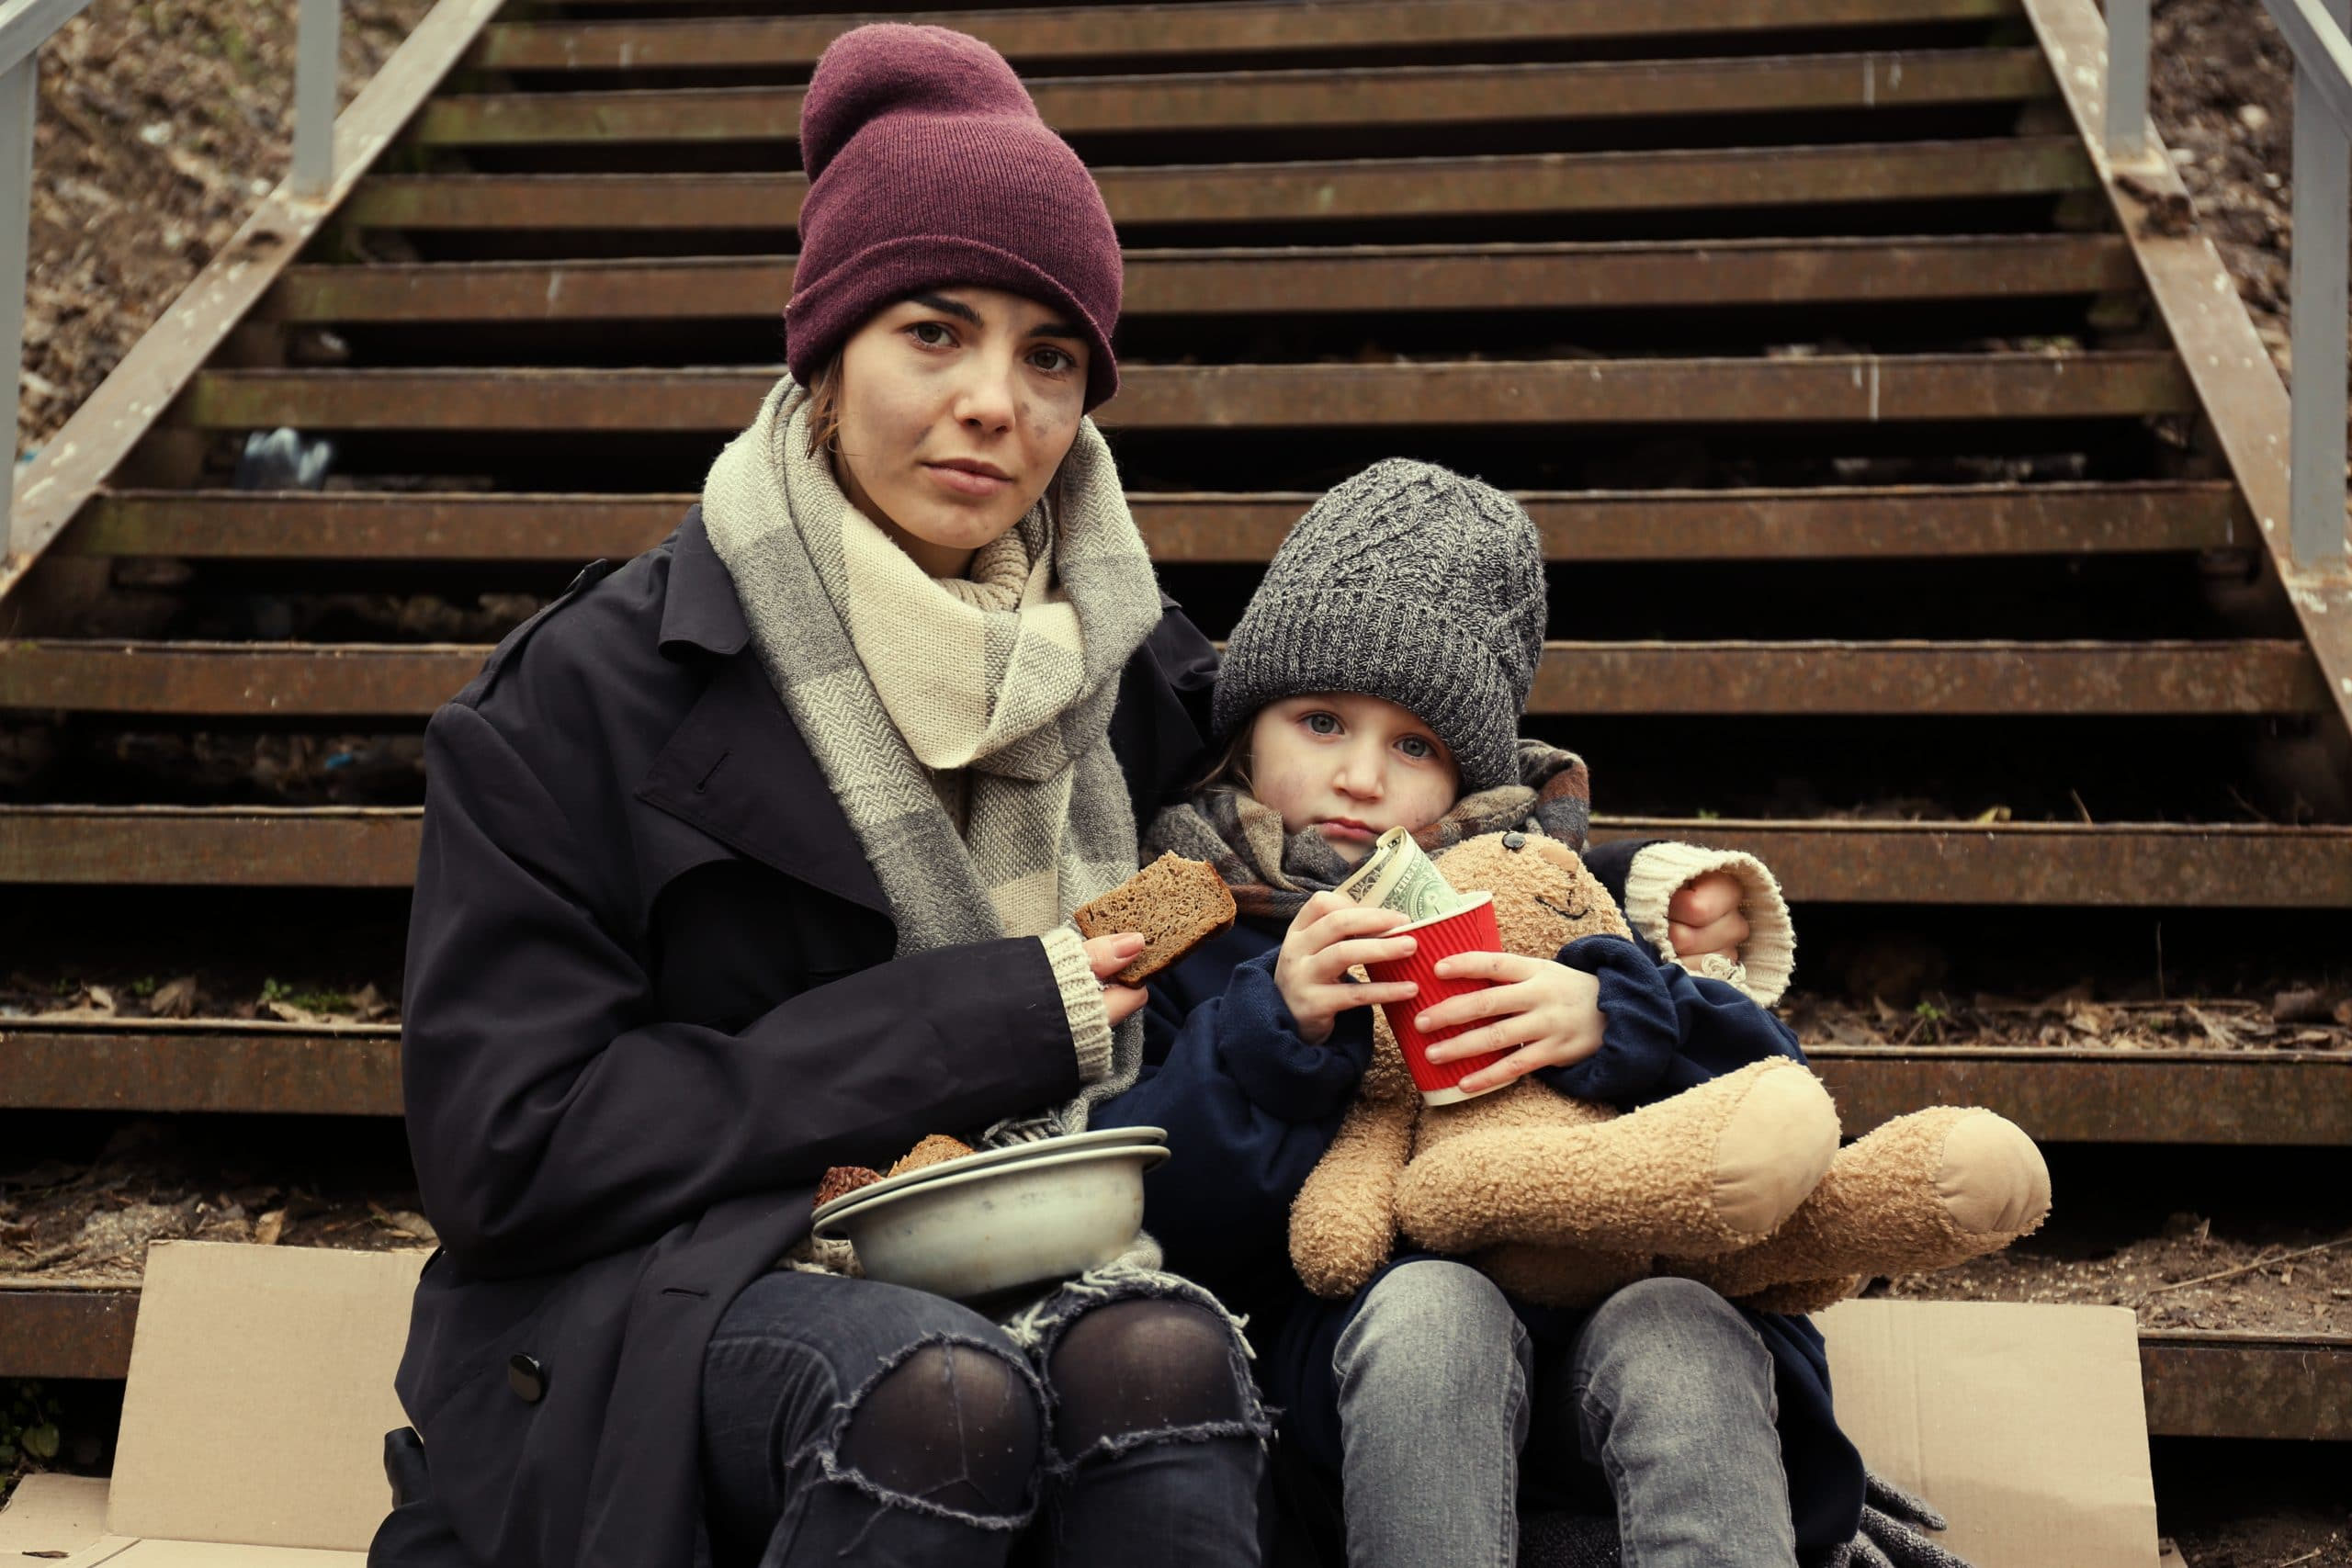 Poor mother and daughter with bread sitting on stairs outdoors  N